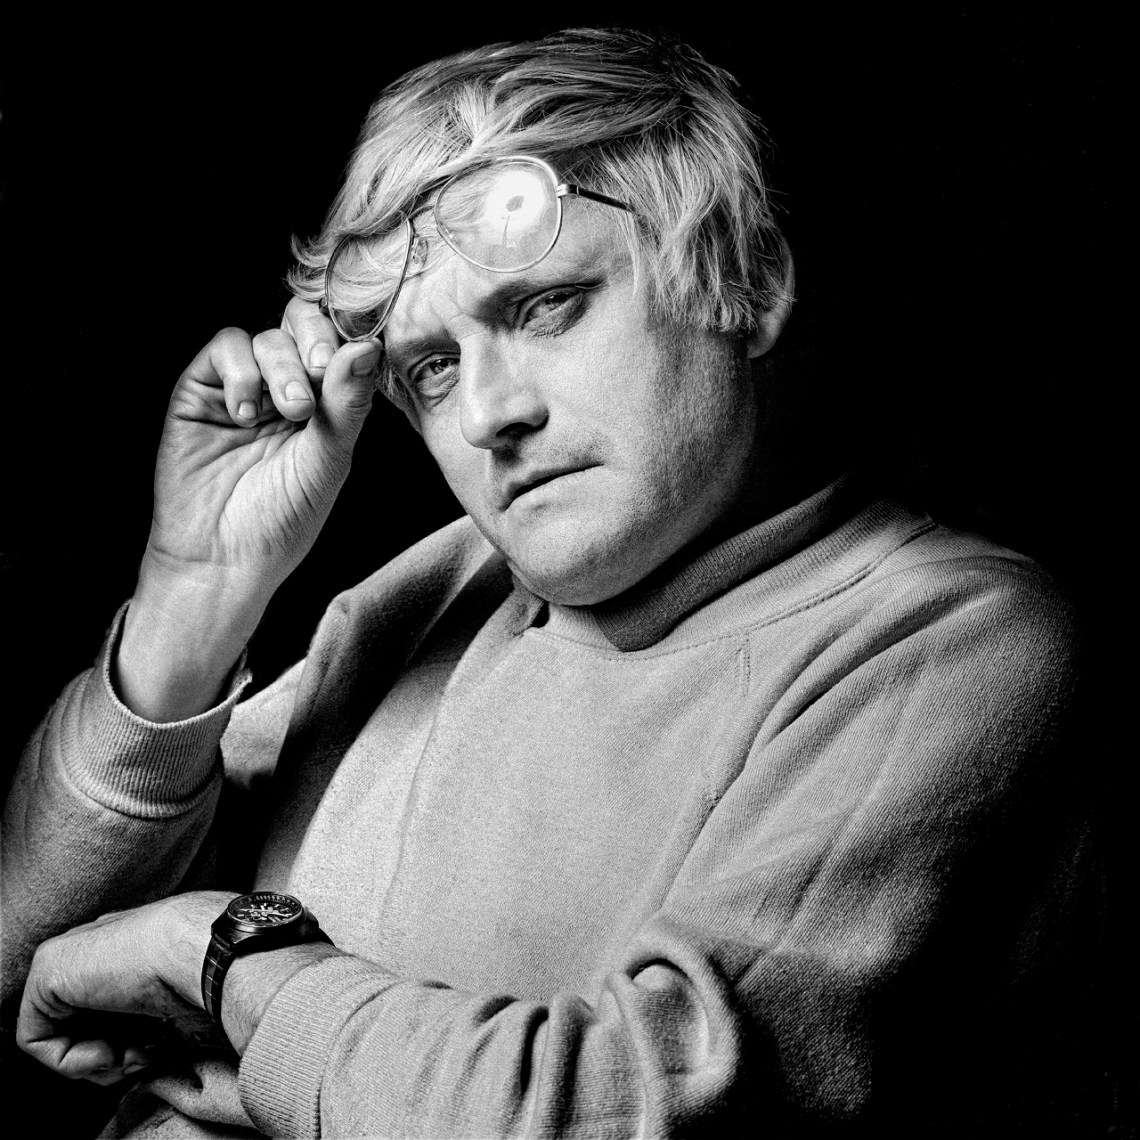 David-Hockney-Glasses-up-Arrowsmith.©.jpg